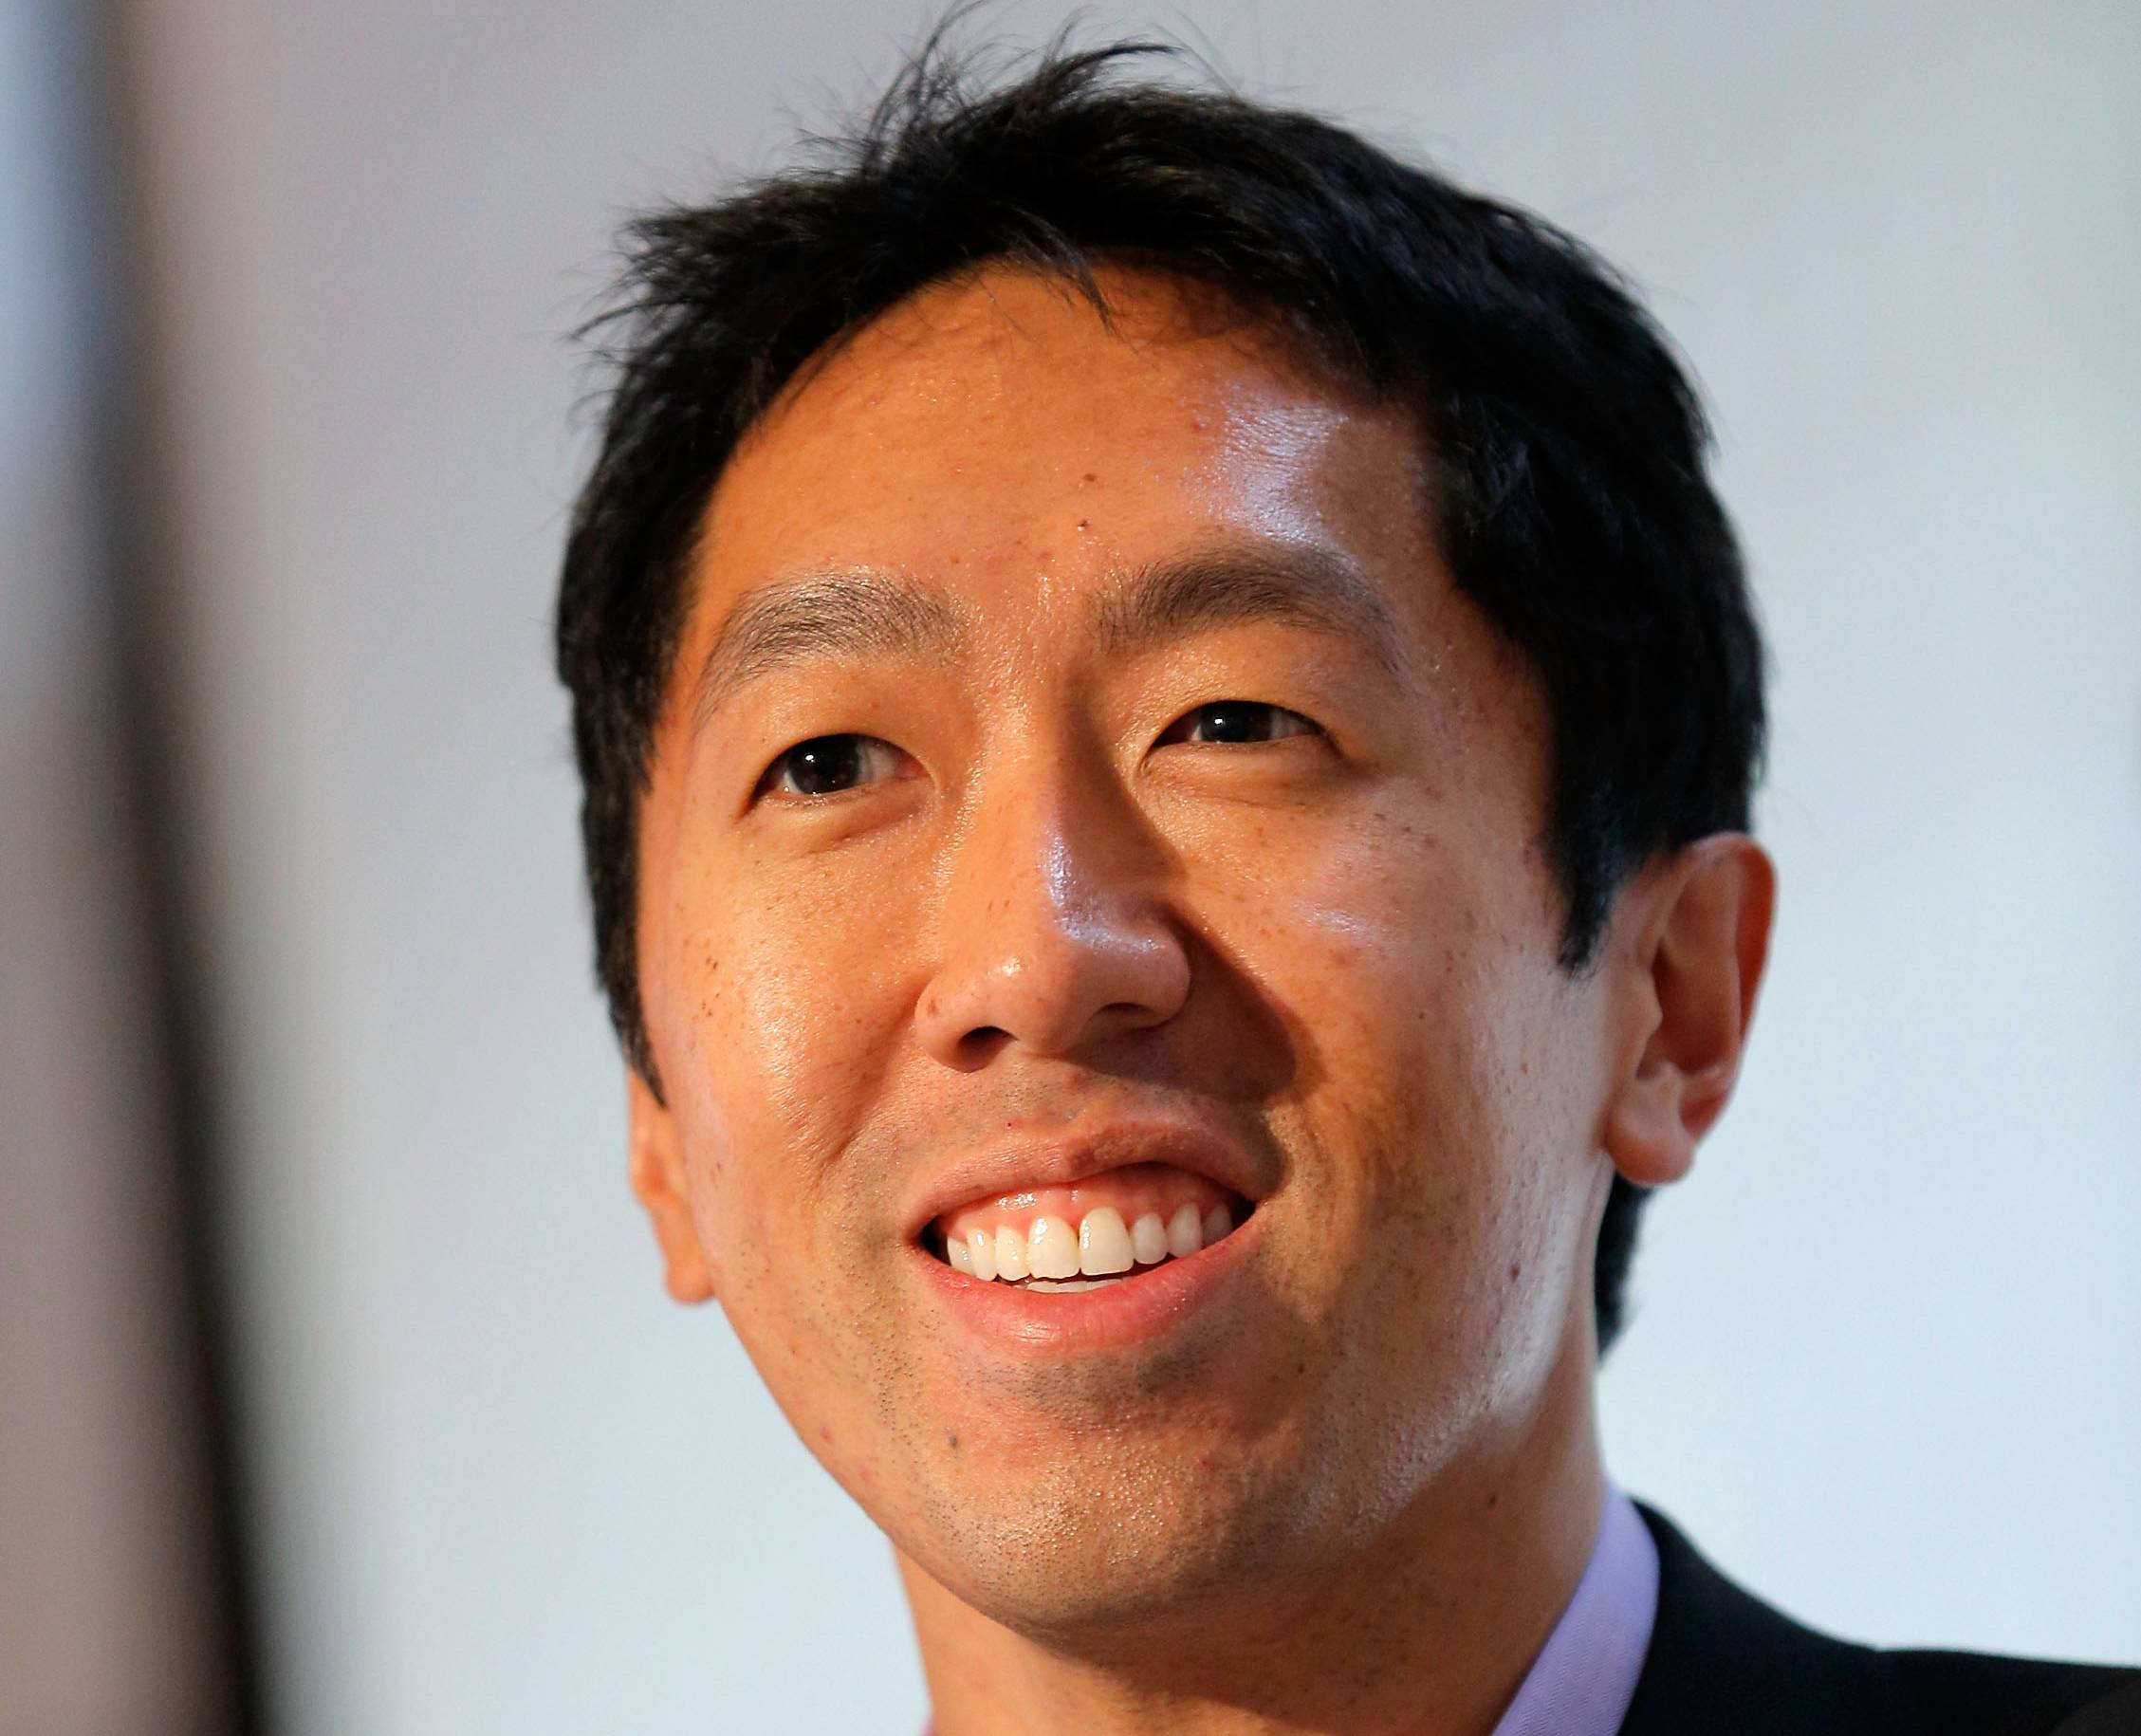 <h1>38. Andrew Ng</h1> Massive open online courses (MOOCs) are all the rage these days, and Stanford computer scientist Ng's Coursera is the world's leading provider of them. More than 4.5 million people have signed up for Coursera's 400-plus MOOCs, and the company has raised $43 million this year—bringing its funding to $65 million from backers including Kleiner Perkins Caufield & Byers and the World Bank.